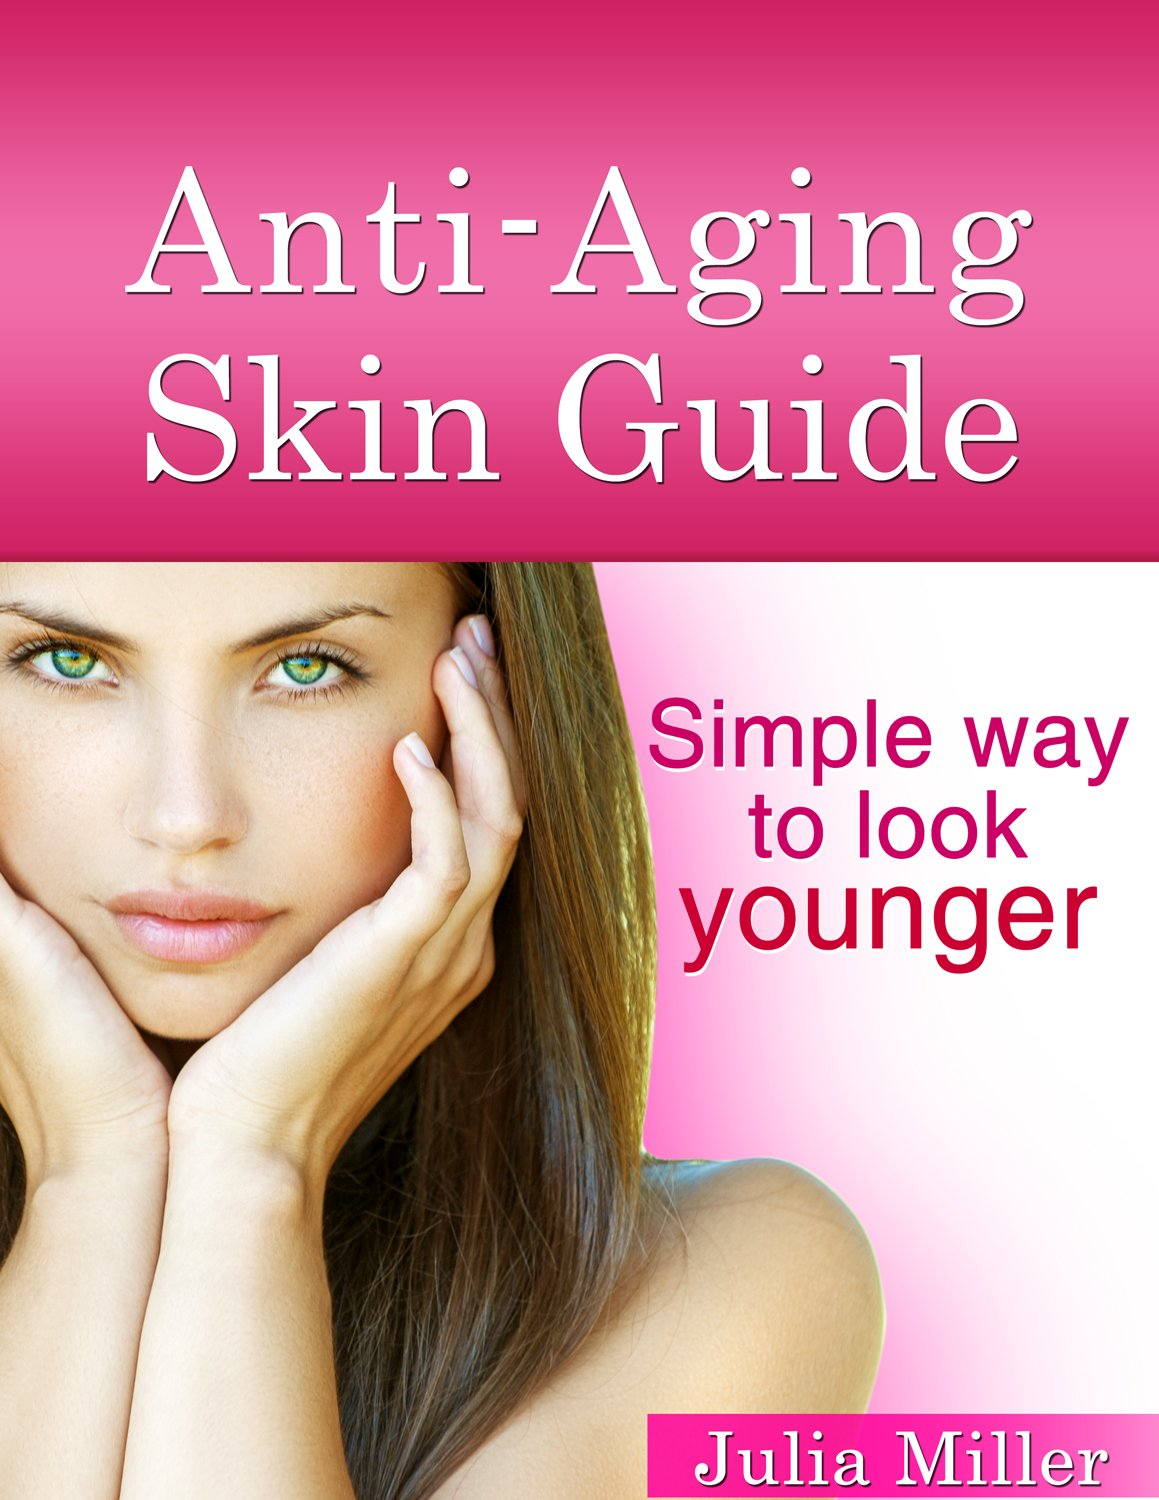 http://www.amazon.com/Anty-Aging-Skin-Guide-Simple-younger-ebook/dp/B00Q0Q1I86/ref=sr_1_10?s=digital-text&ie=UTF8&qid=1416768549&sr=1-10&keywords=anti-aging+skin+guide